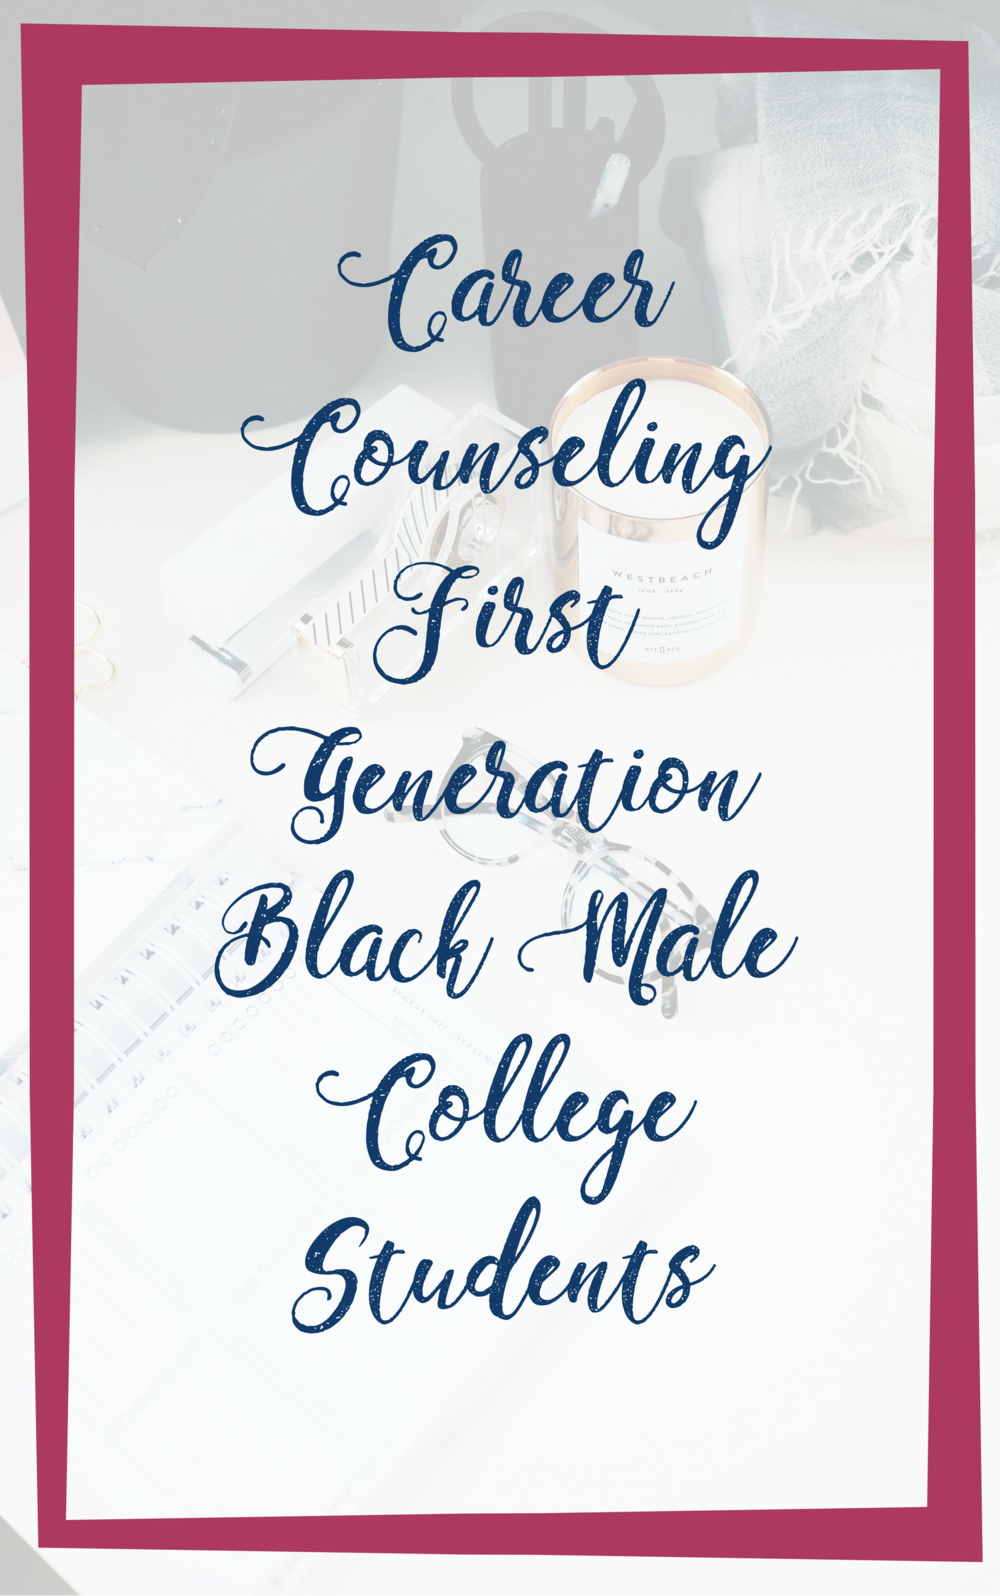 Career Counseling First Generation Black Male College Students